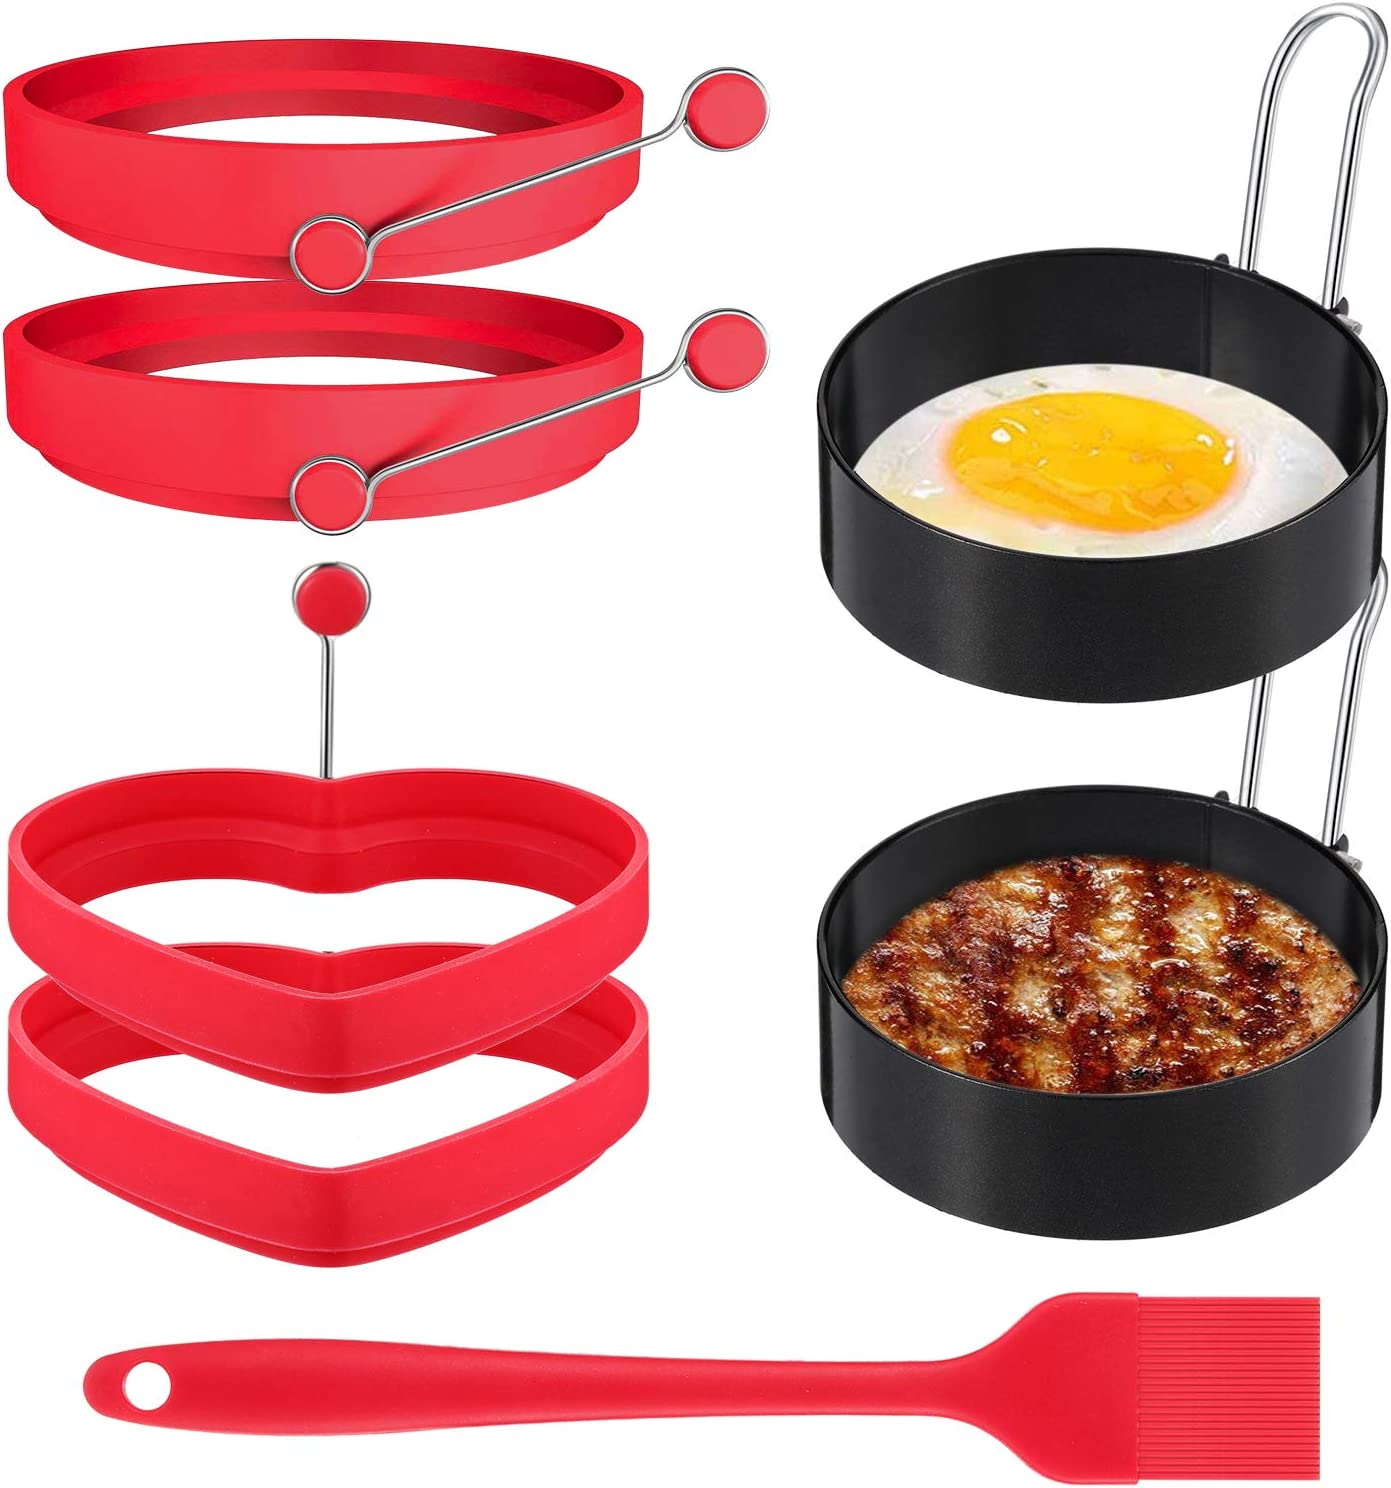 6 Pieces Egg Ring Non Stick Pancake Ring Egg Circle Ring Stainless Steel Egg Cooker Rings Silicone Fried Egg Mold Heart Egg Rings with Silicone Brush for Egg Shaping